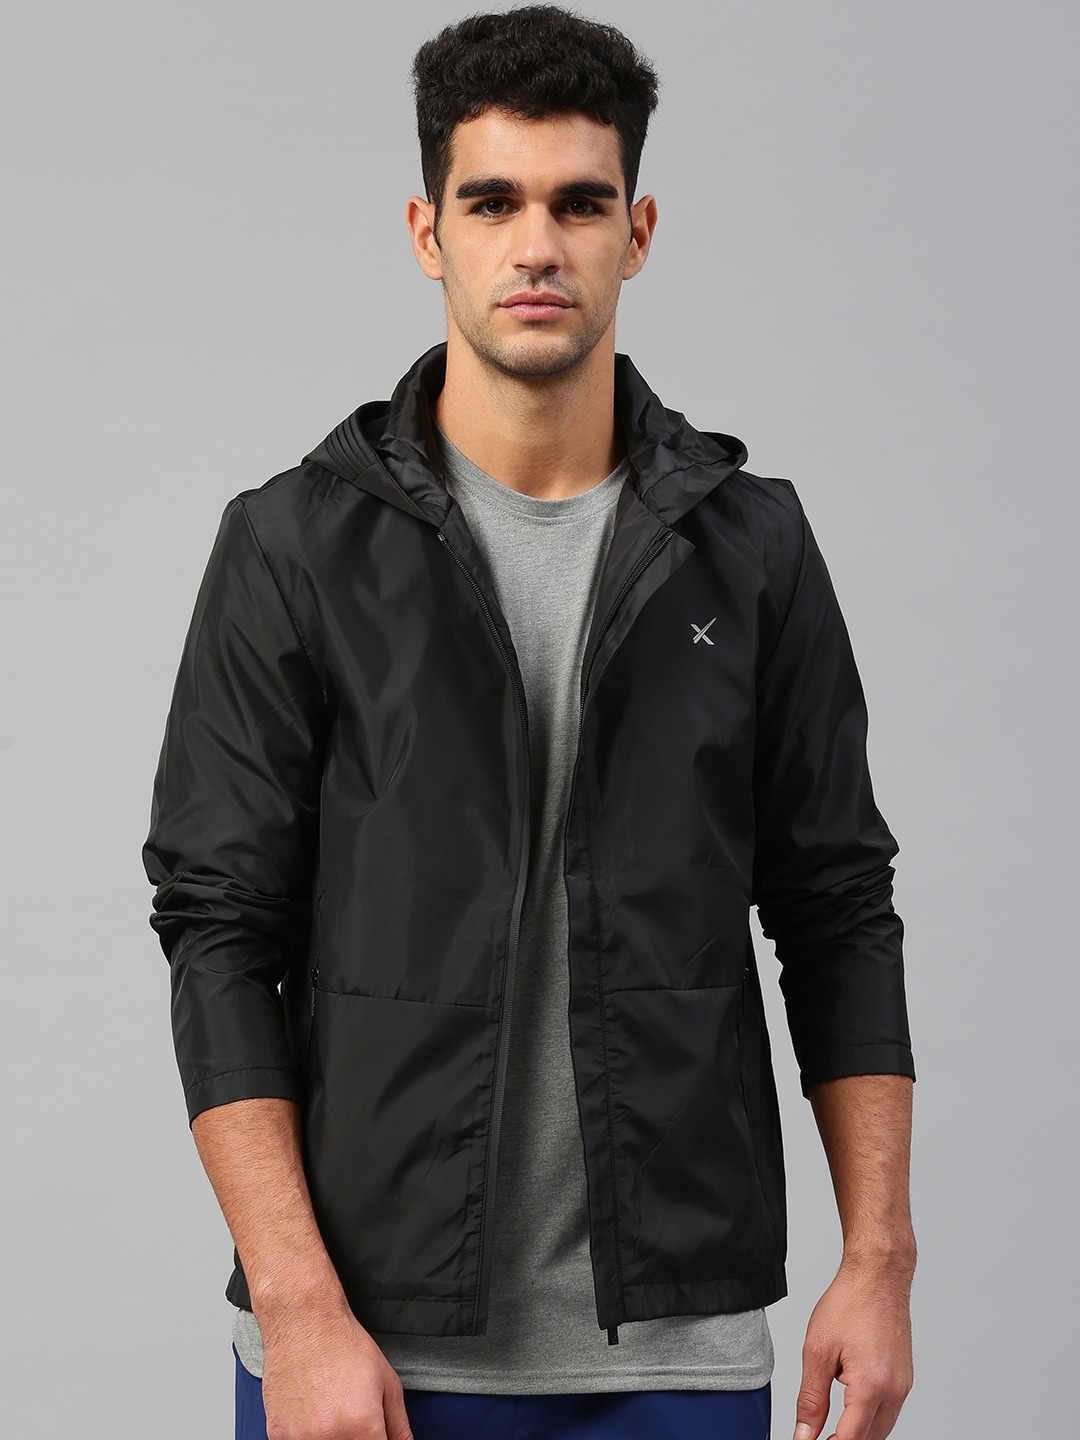 Look - Mens stylish jackets online video